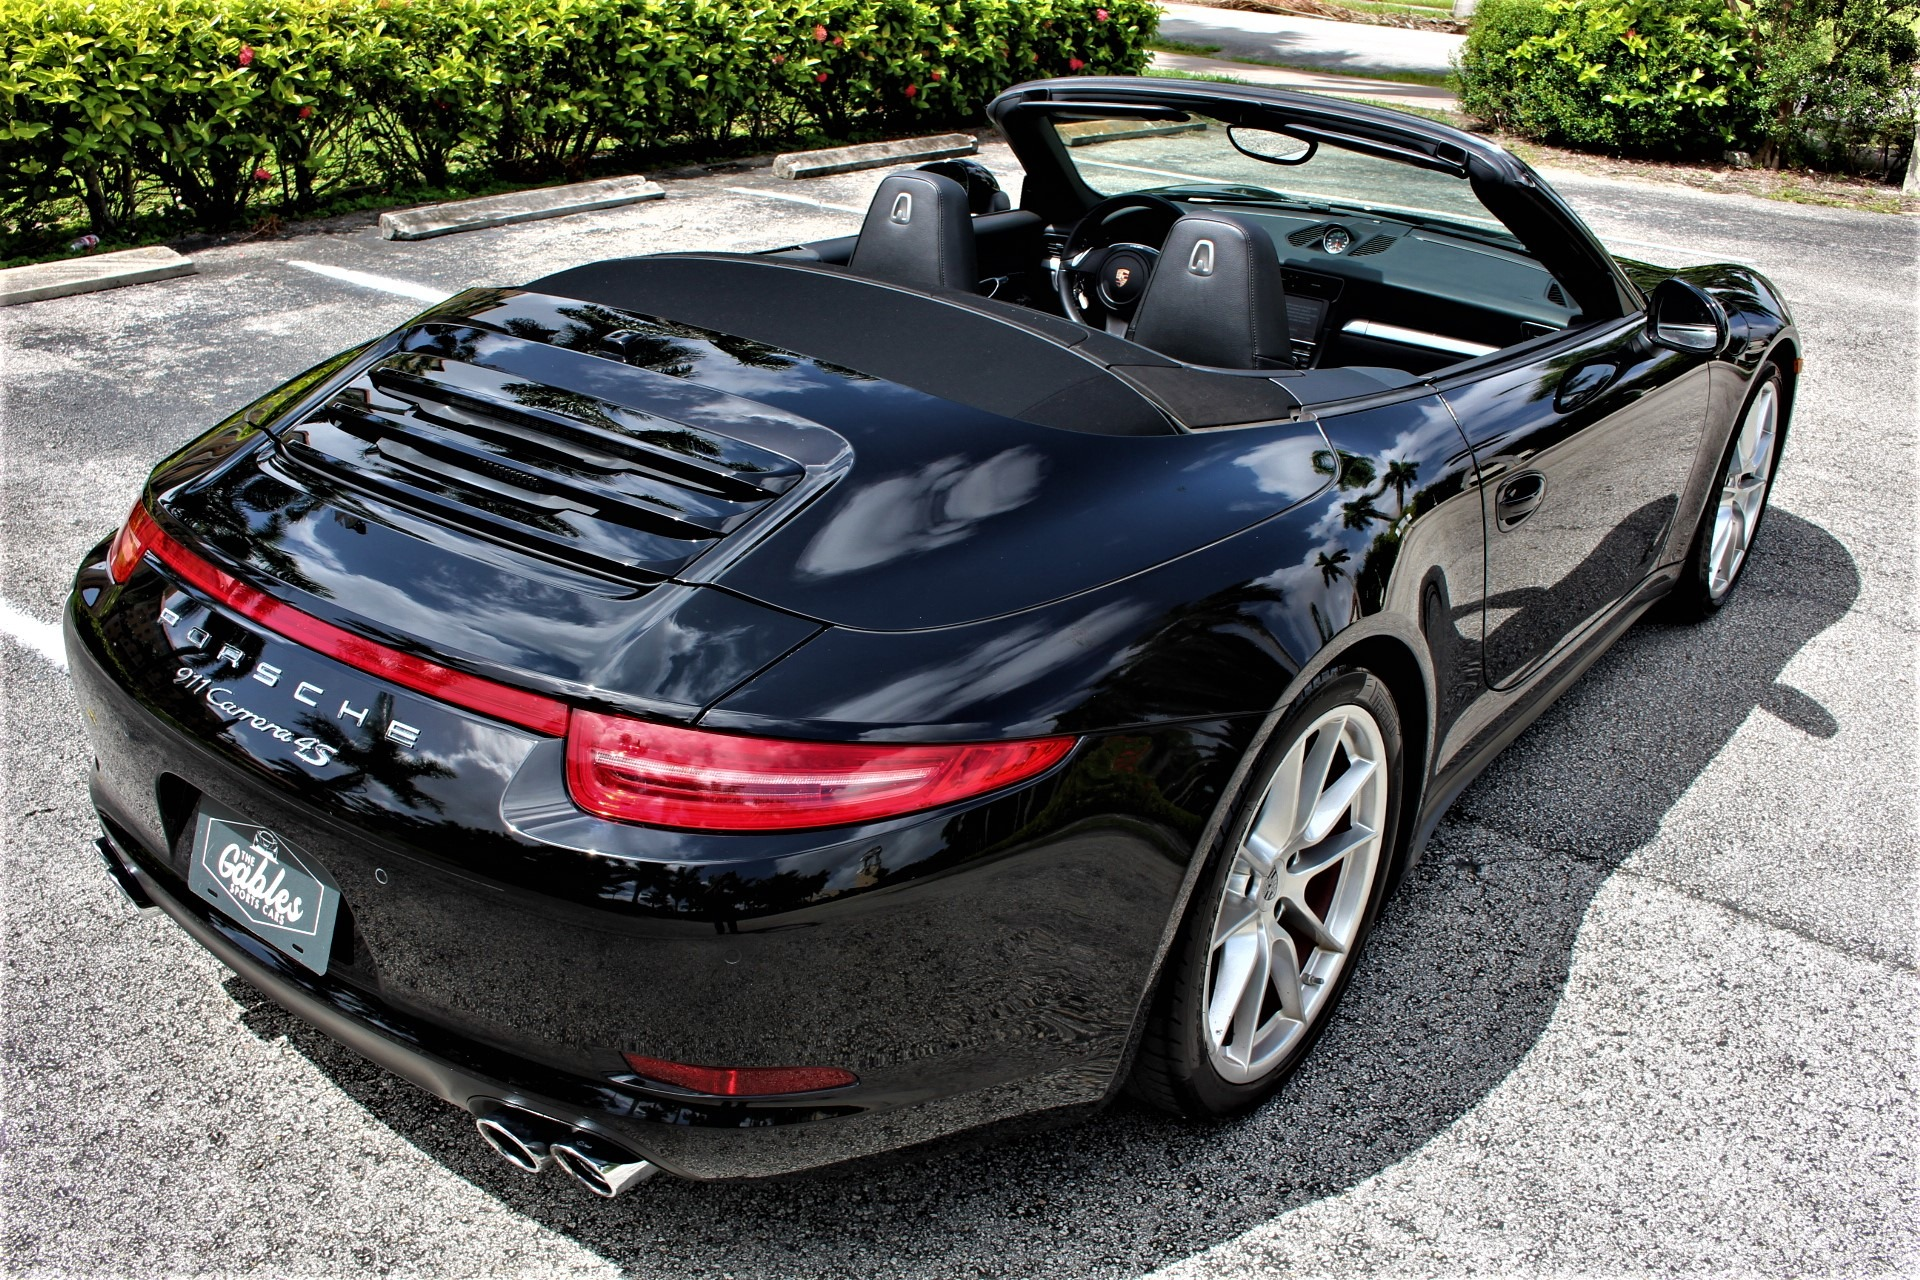 Used 2013 Porsche 911 Carrera 4S for sale Sold at The Gables Sports Cars in Miami FL 33146 1